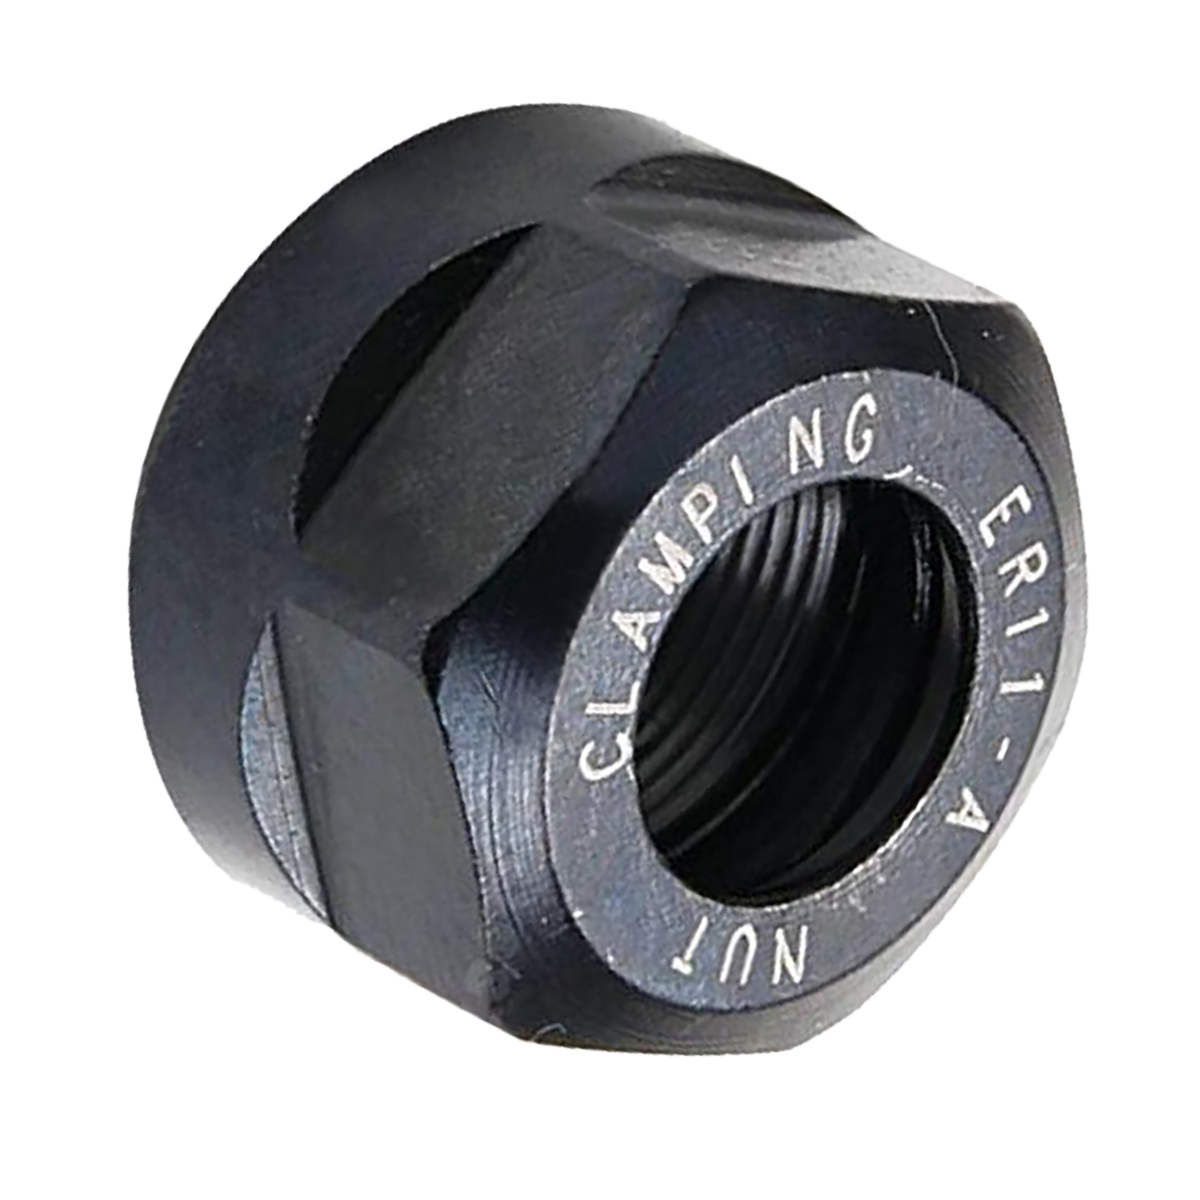 цена на 1Pc Clamping Nut ER11 A Type M14*0.75 Collet High Hardened Clamping Nuts For CNC Milling Chuck Holder Lathe Mayitr